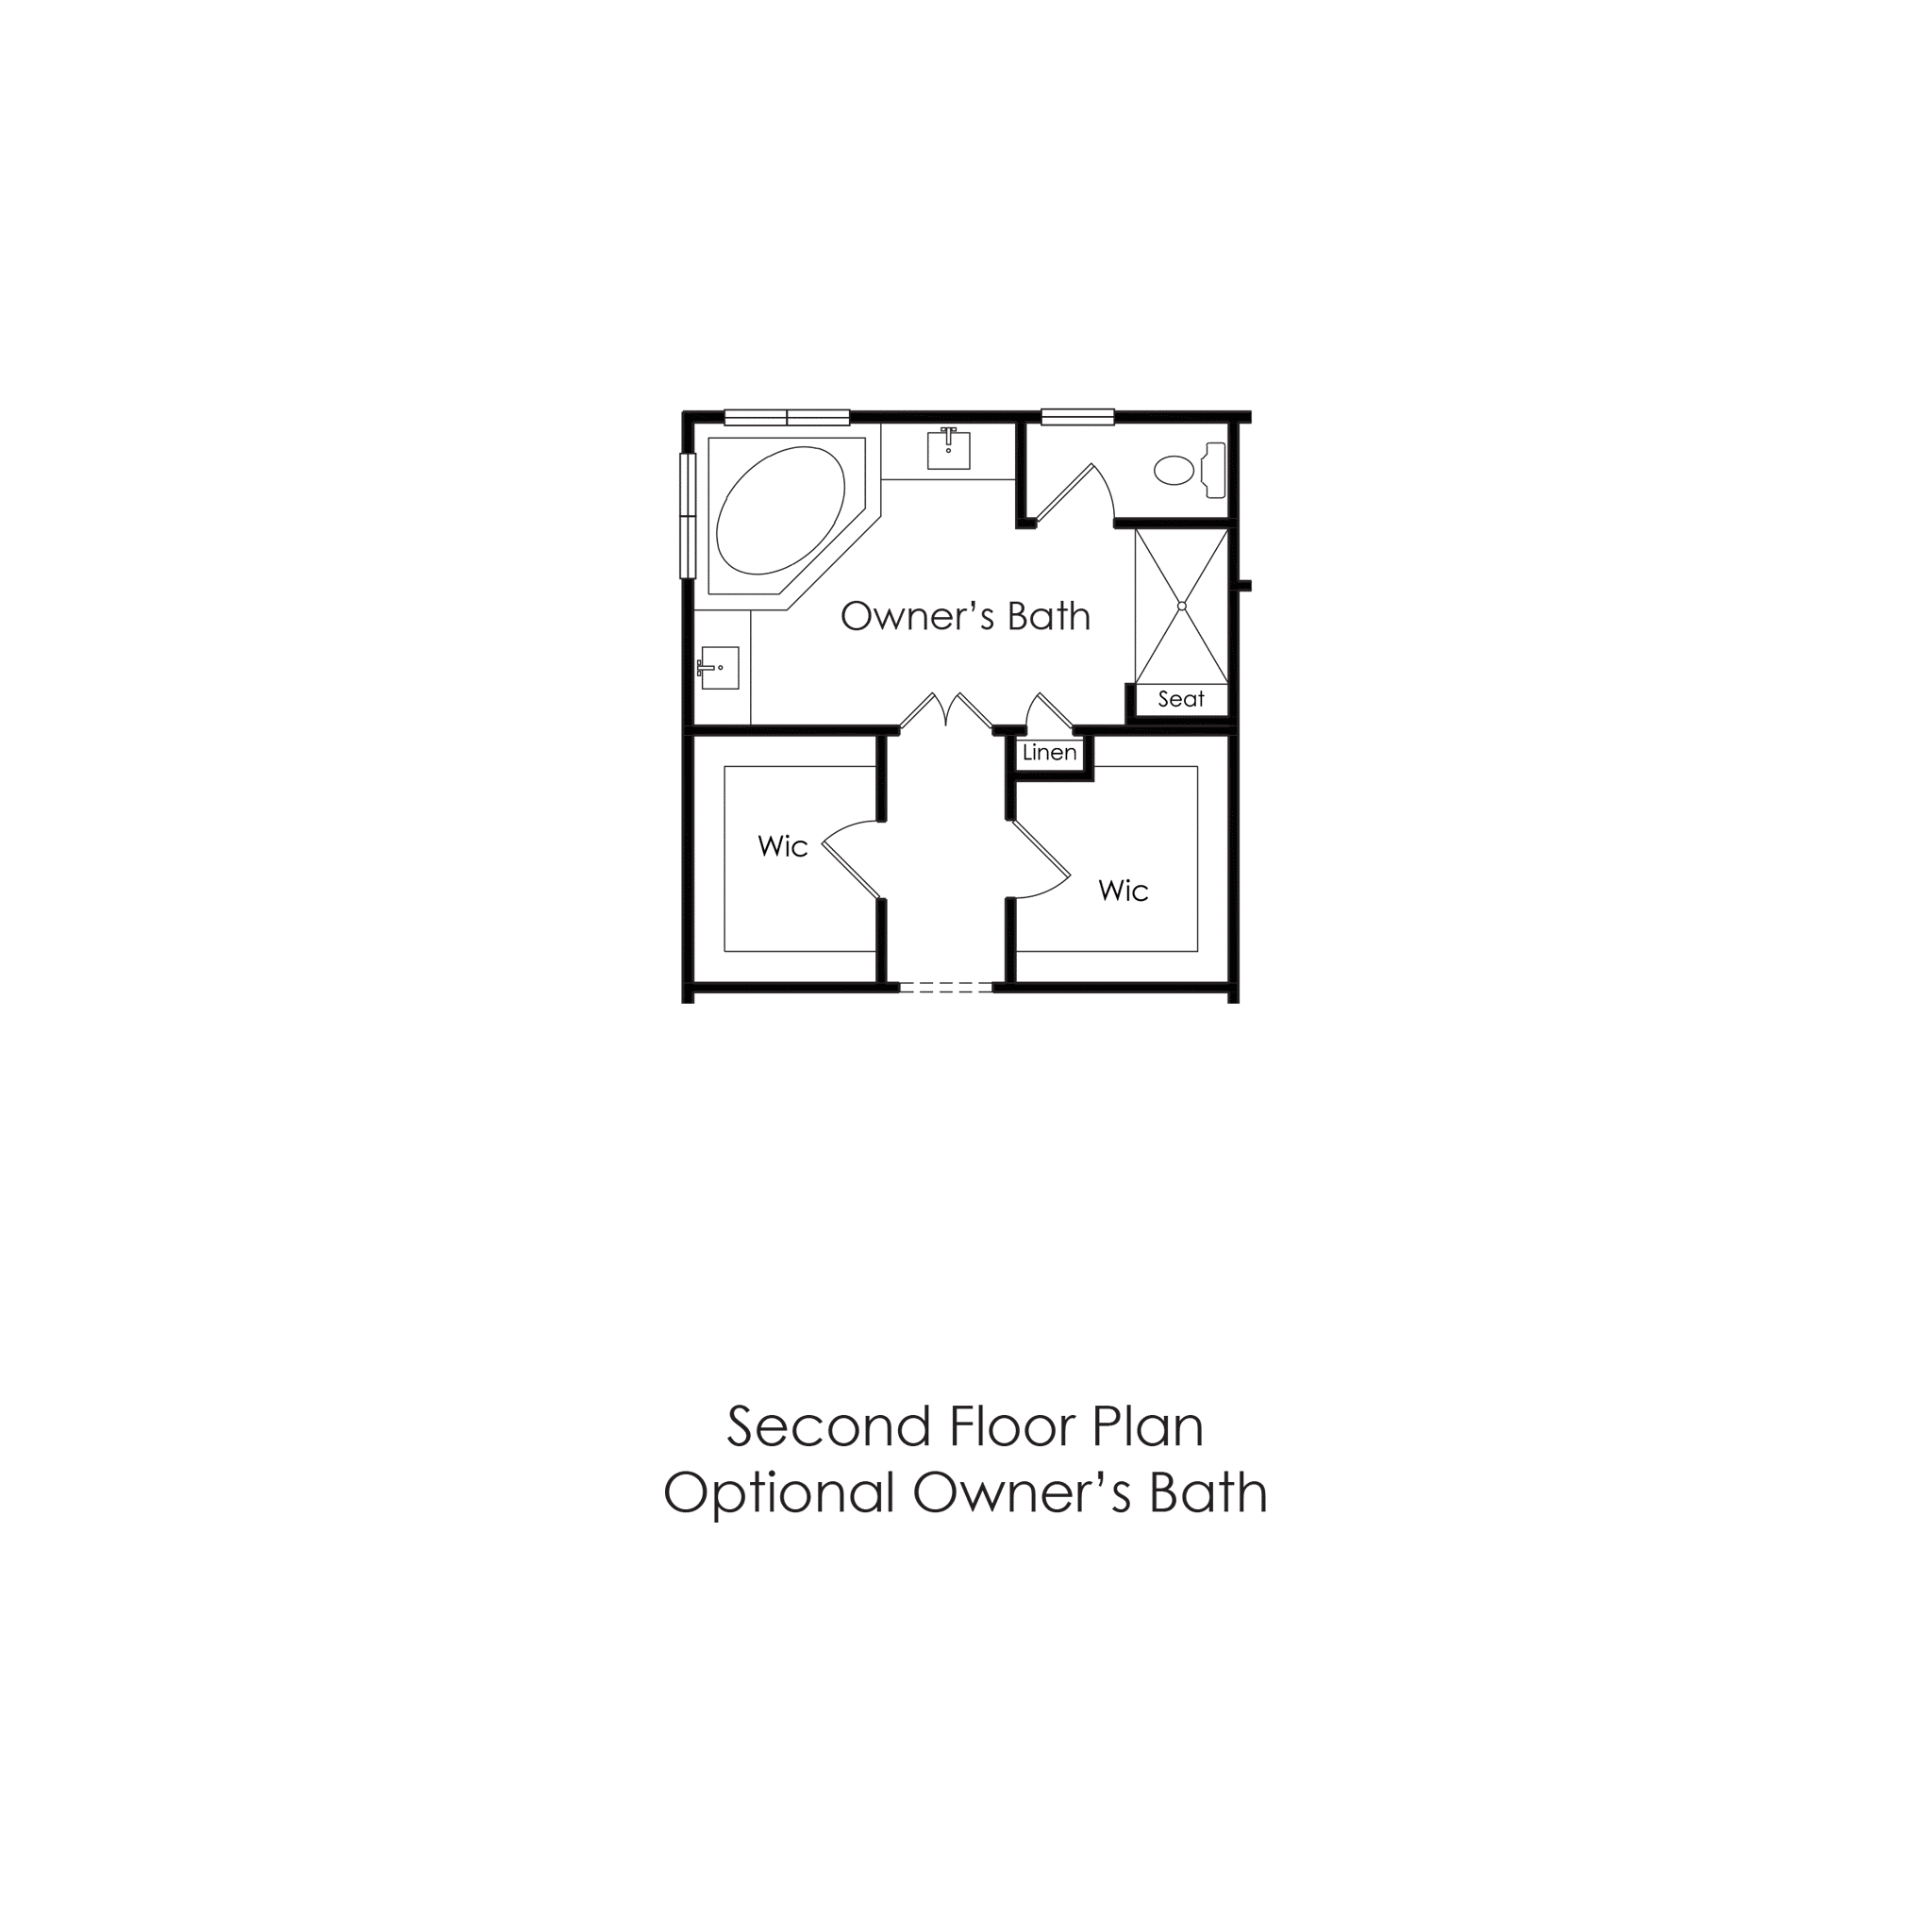 Second Floor – Optional Owners Bath